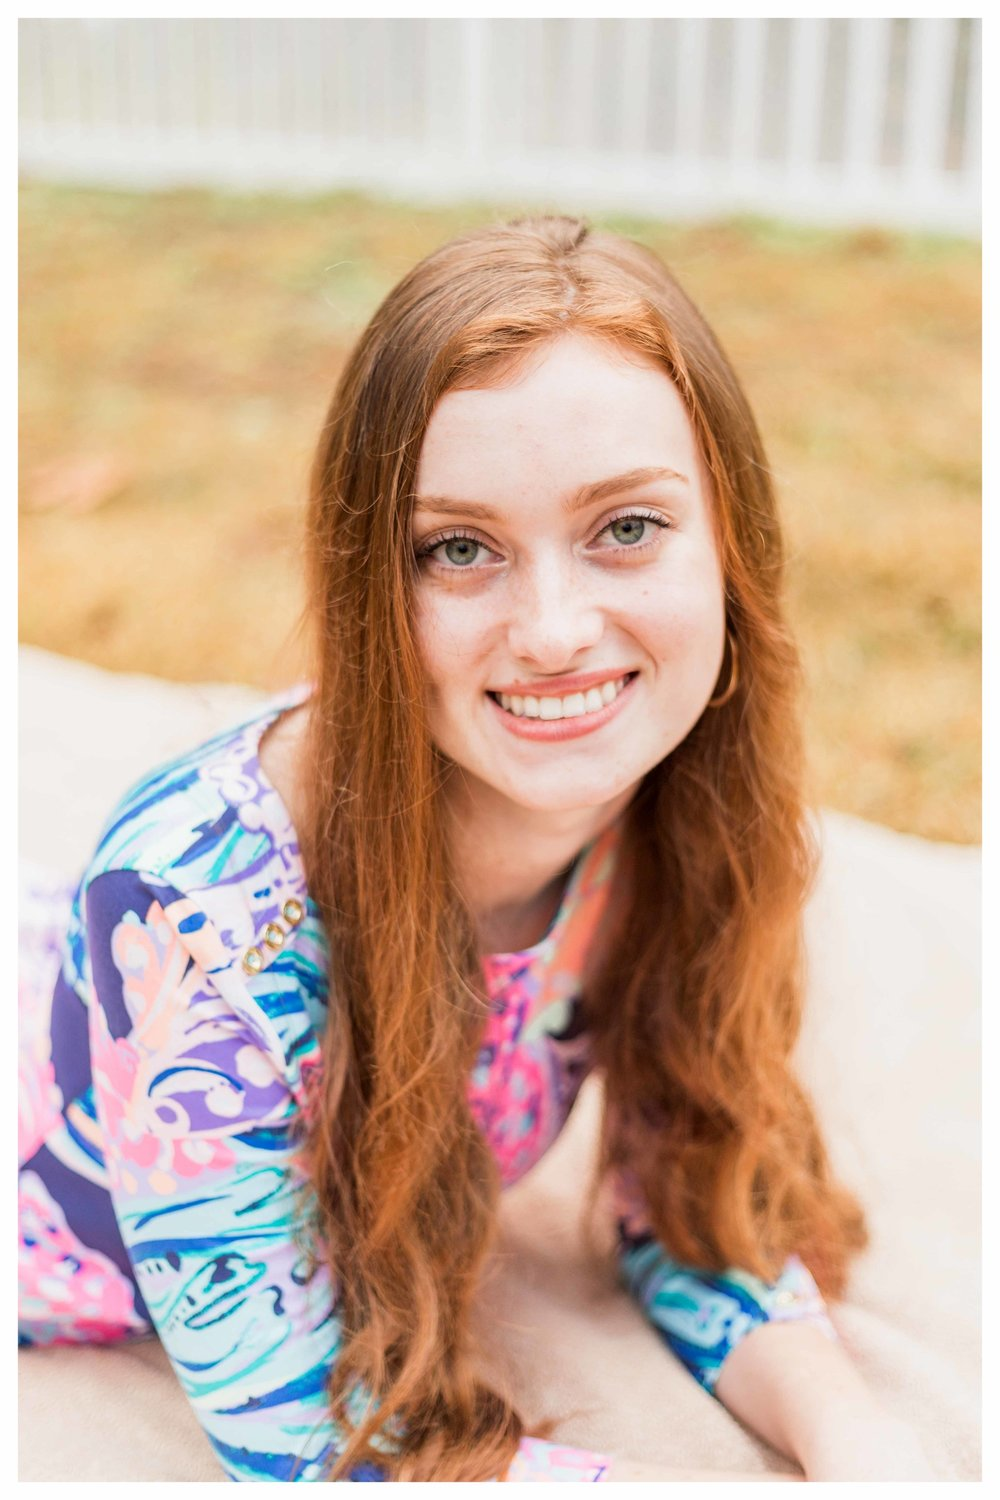 lillie_senior_2018_blog-21.jpg